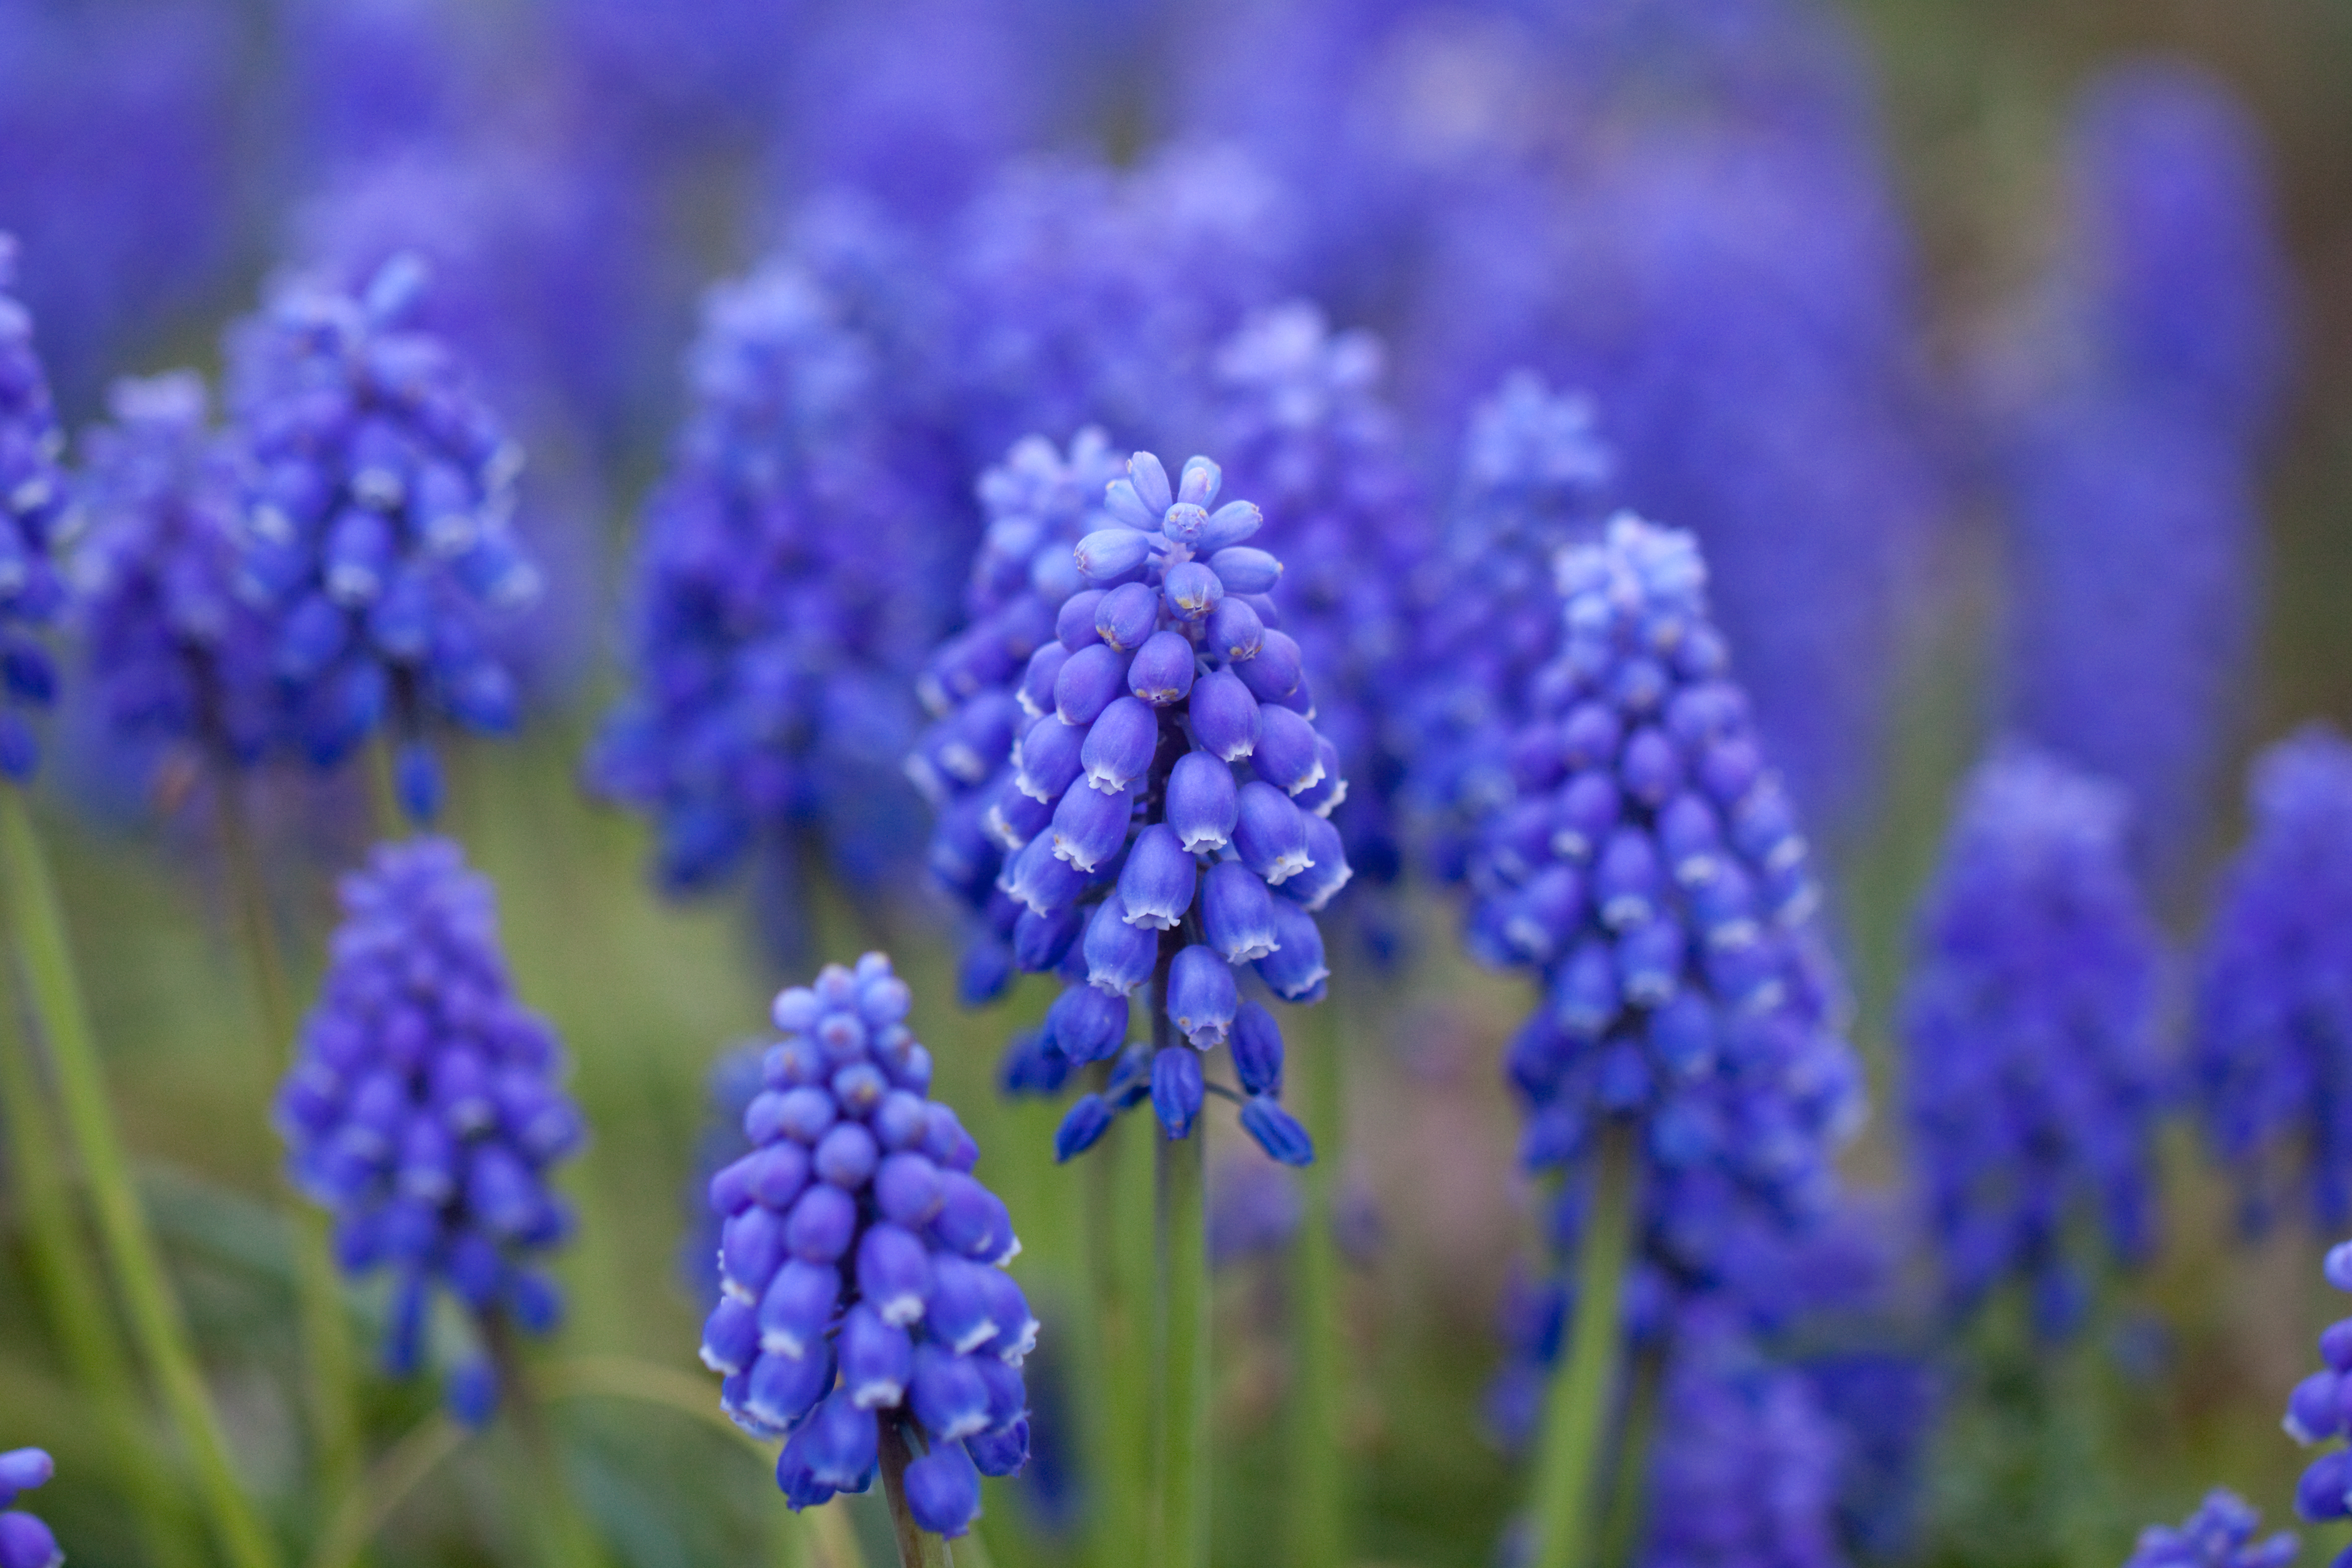 File Flower Grape hyacinth Flickr nekonomania Wikimedia mons